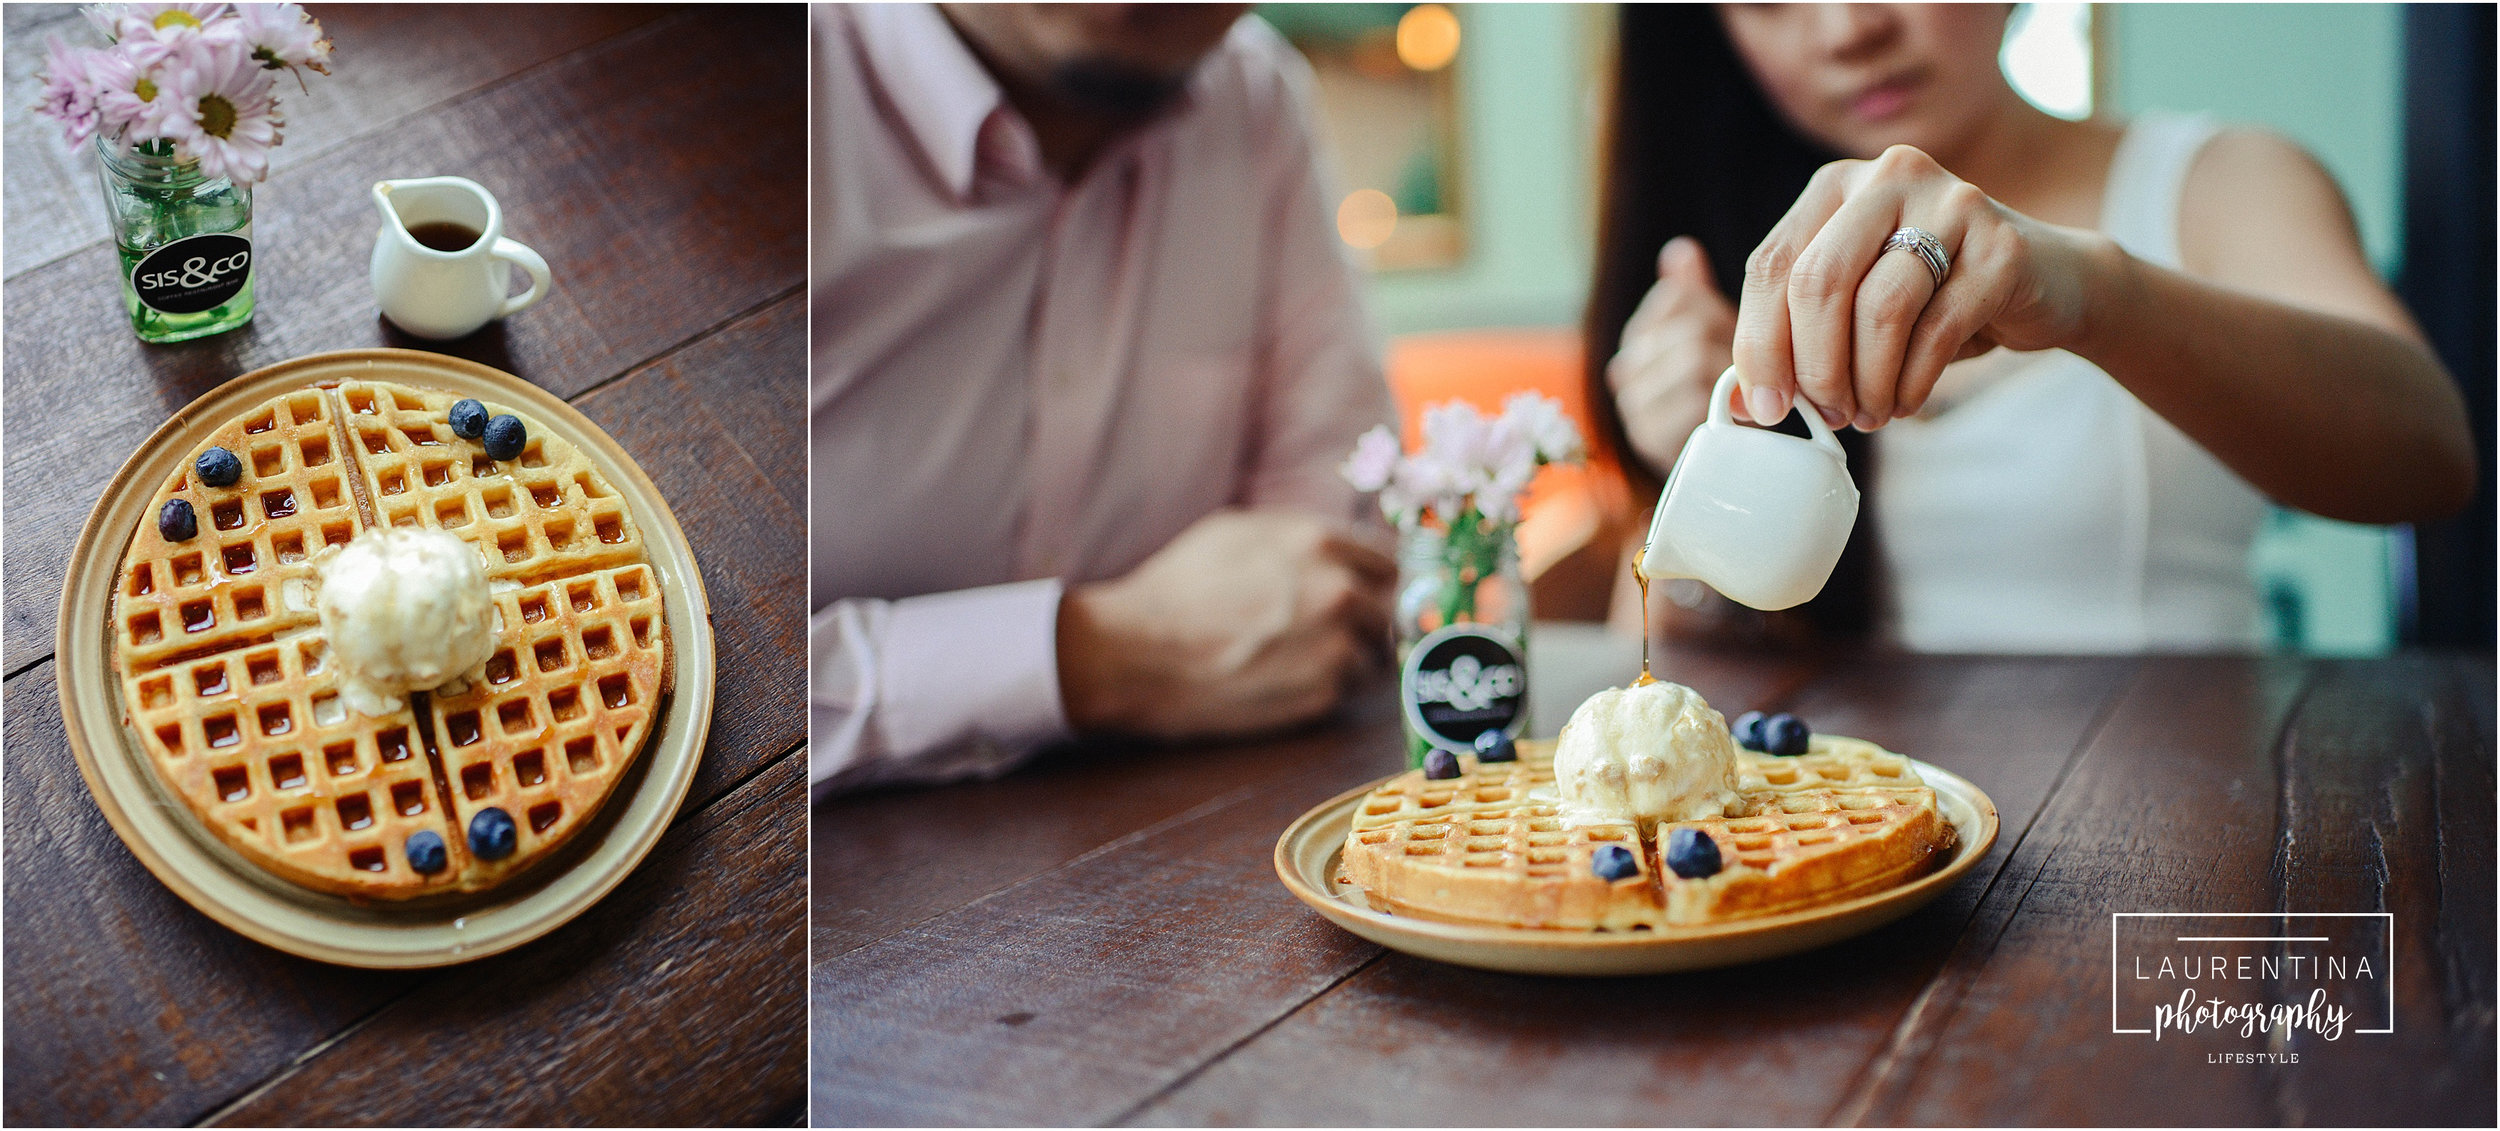 Waffles and Ice Cream Engagement Photography Malaysia